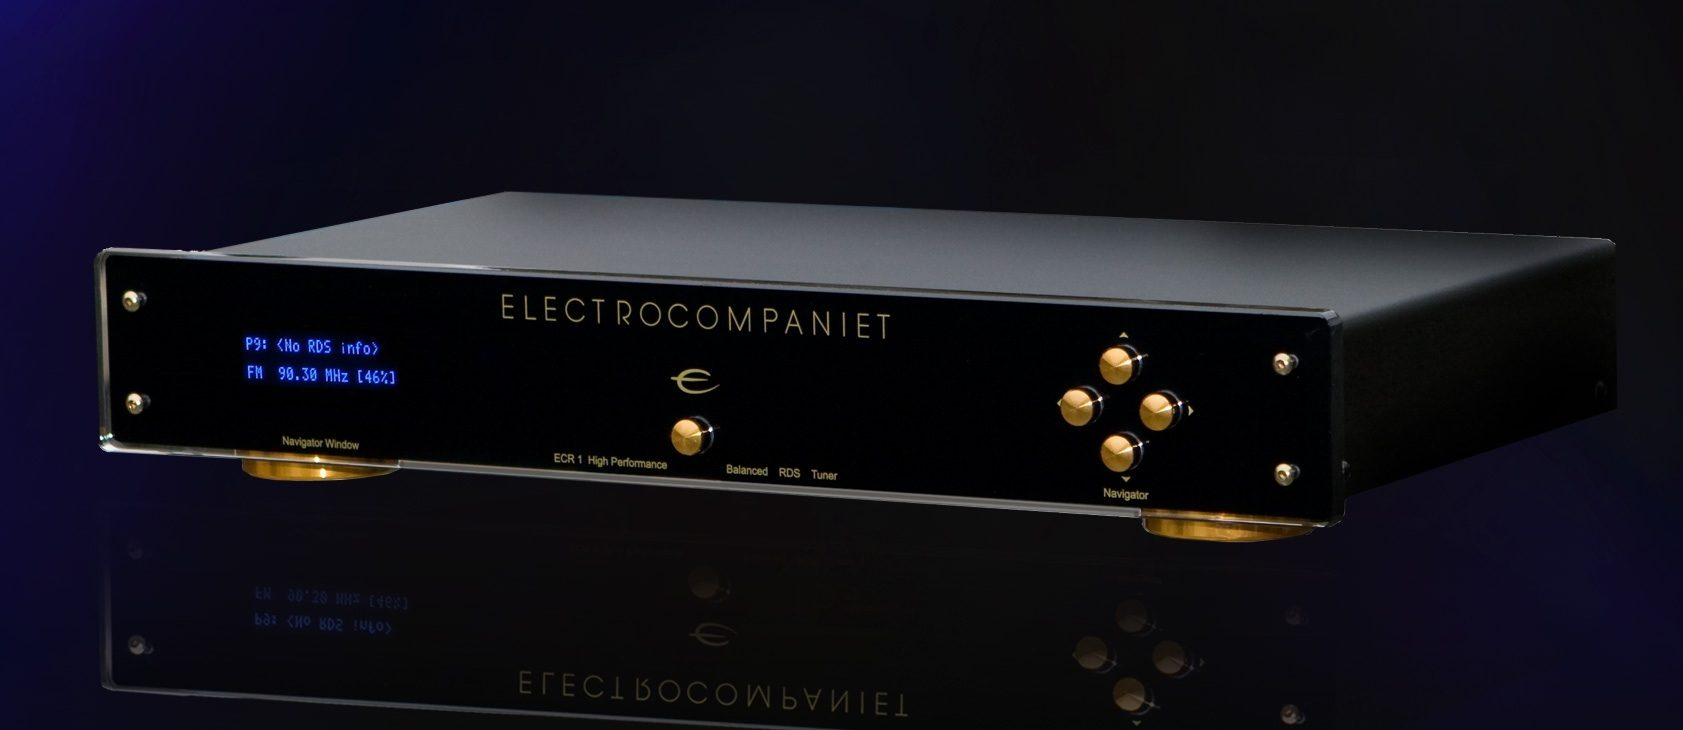 Electrocompaniet Introduces the ECR 1—A High-Performance, Do-All Tuner